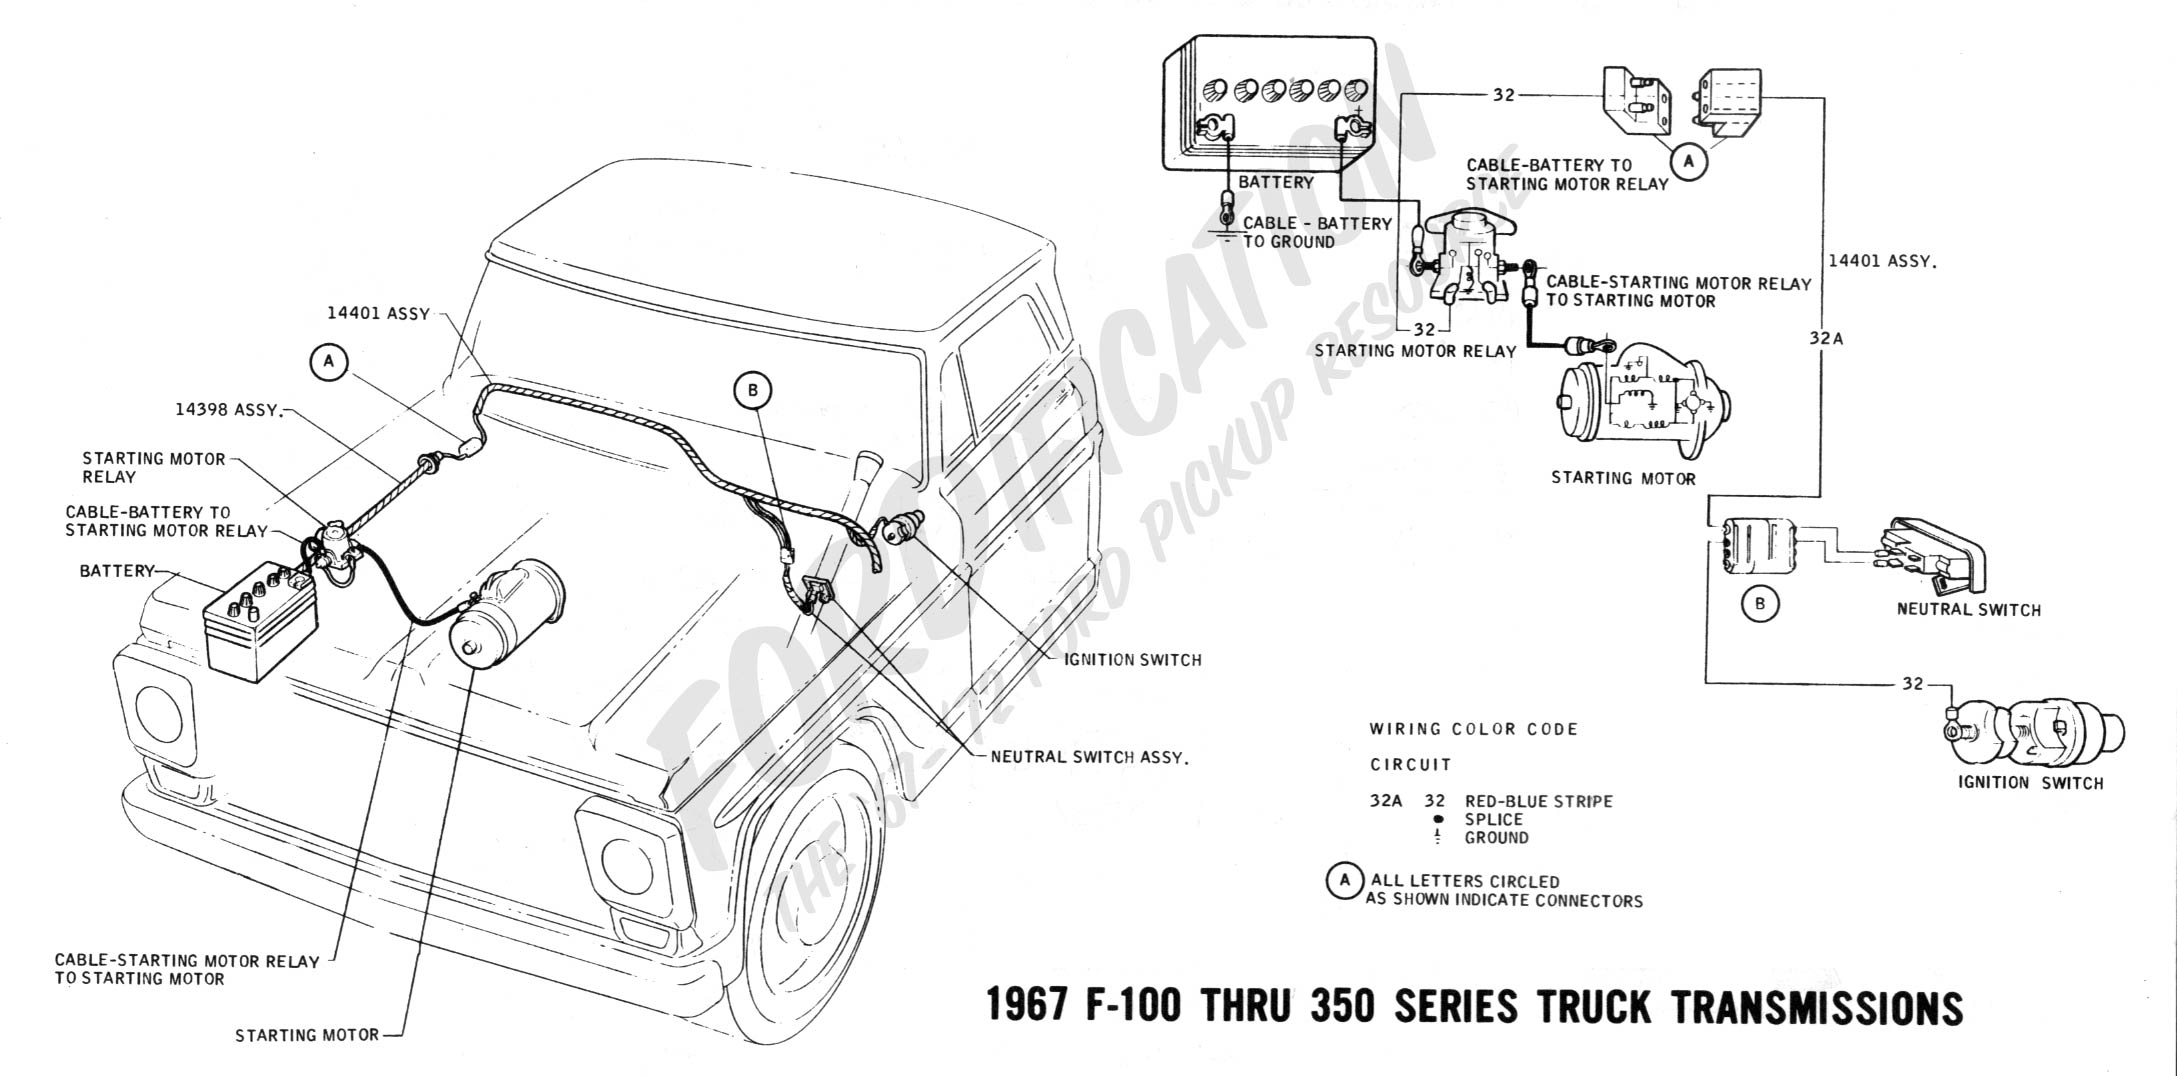 1972 Ford Truck Wiring Trusted Wiring Diagrams \u2022 1986 Ford Ignition  Switch Wiring Diagram 1976 Ford Truck Ignition Wiring Diagram Free